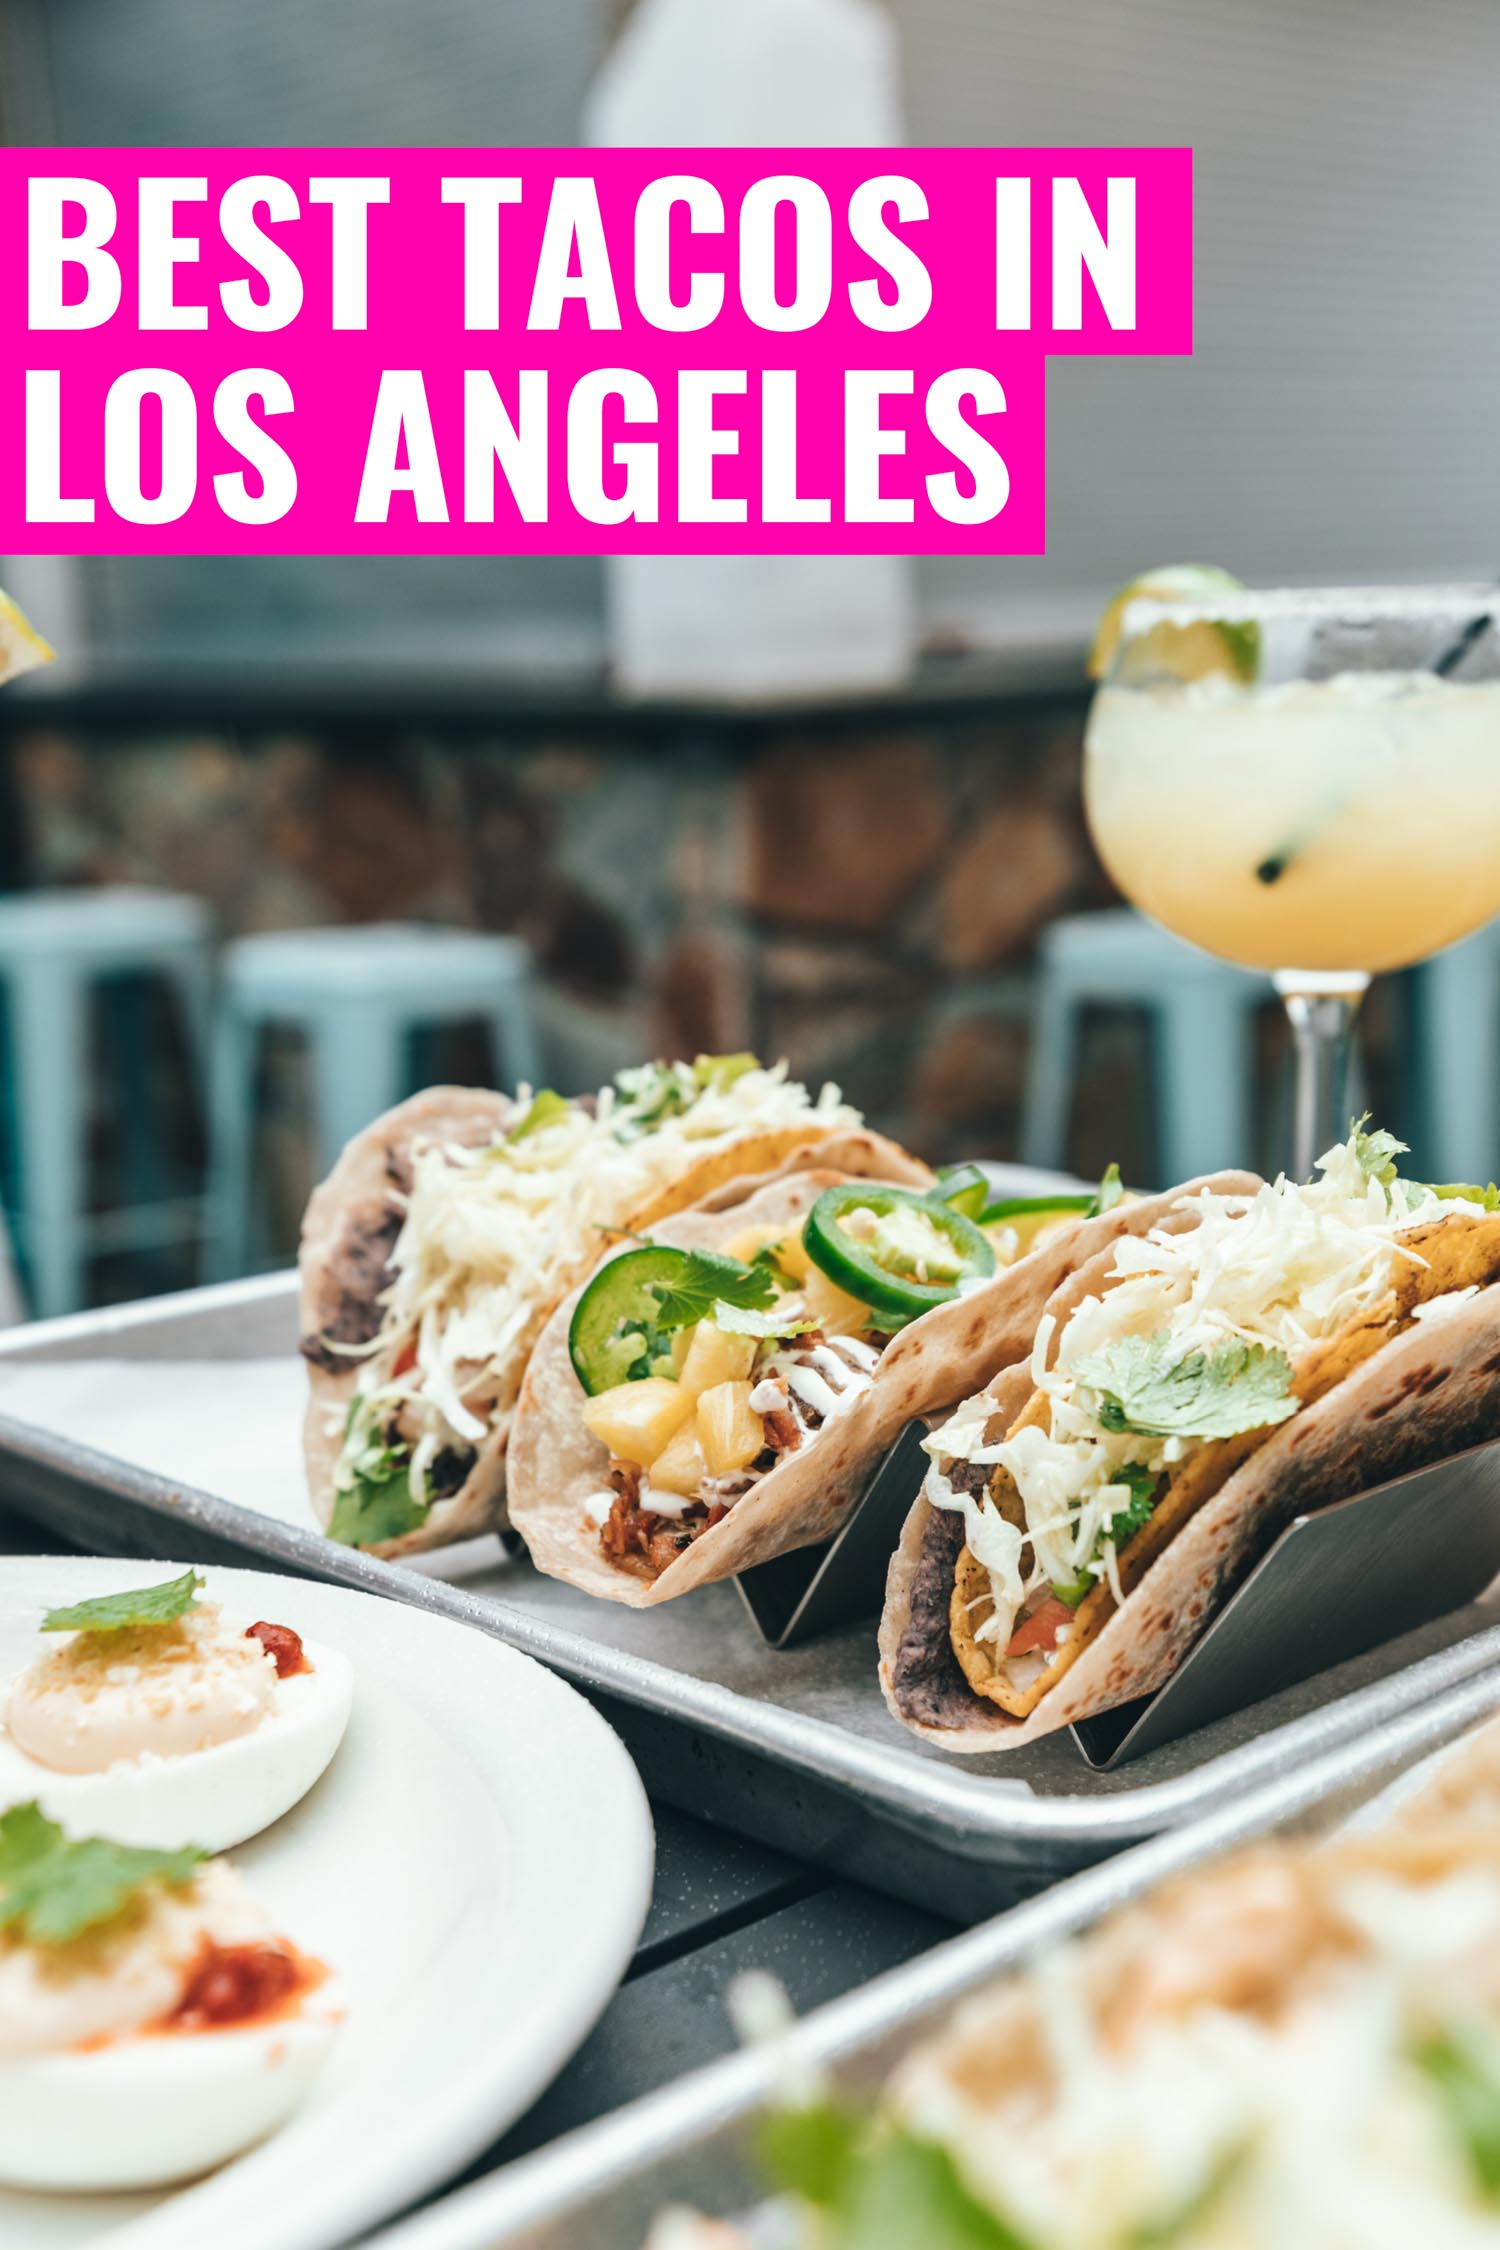 tacos in Los Angeles at a restaurant with drinks